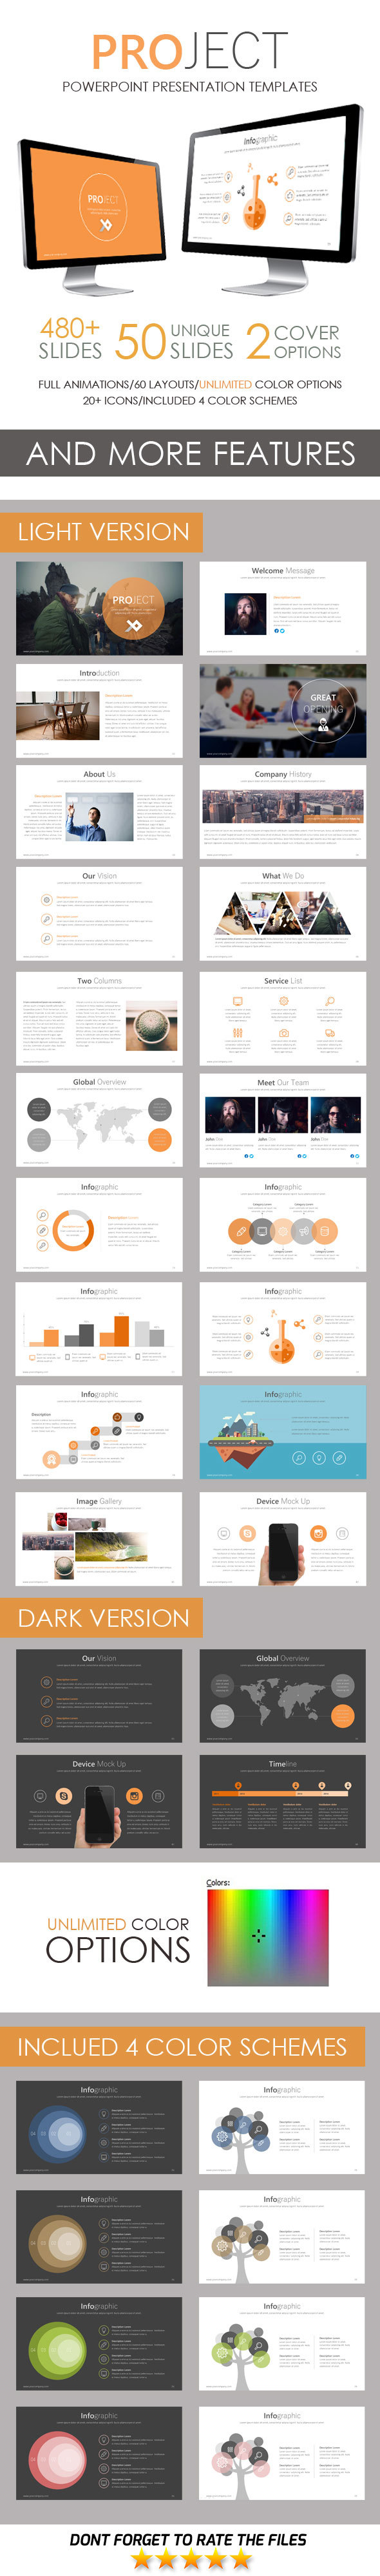 Project PowerPoint Template - Business PowerPoint Templates